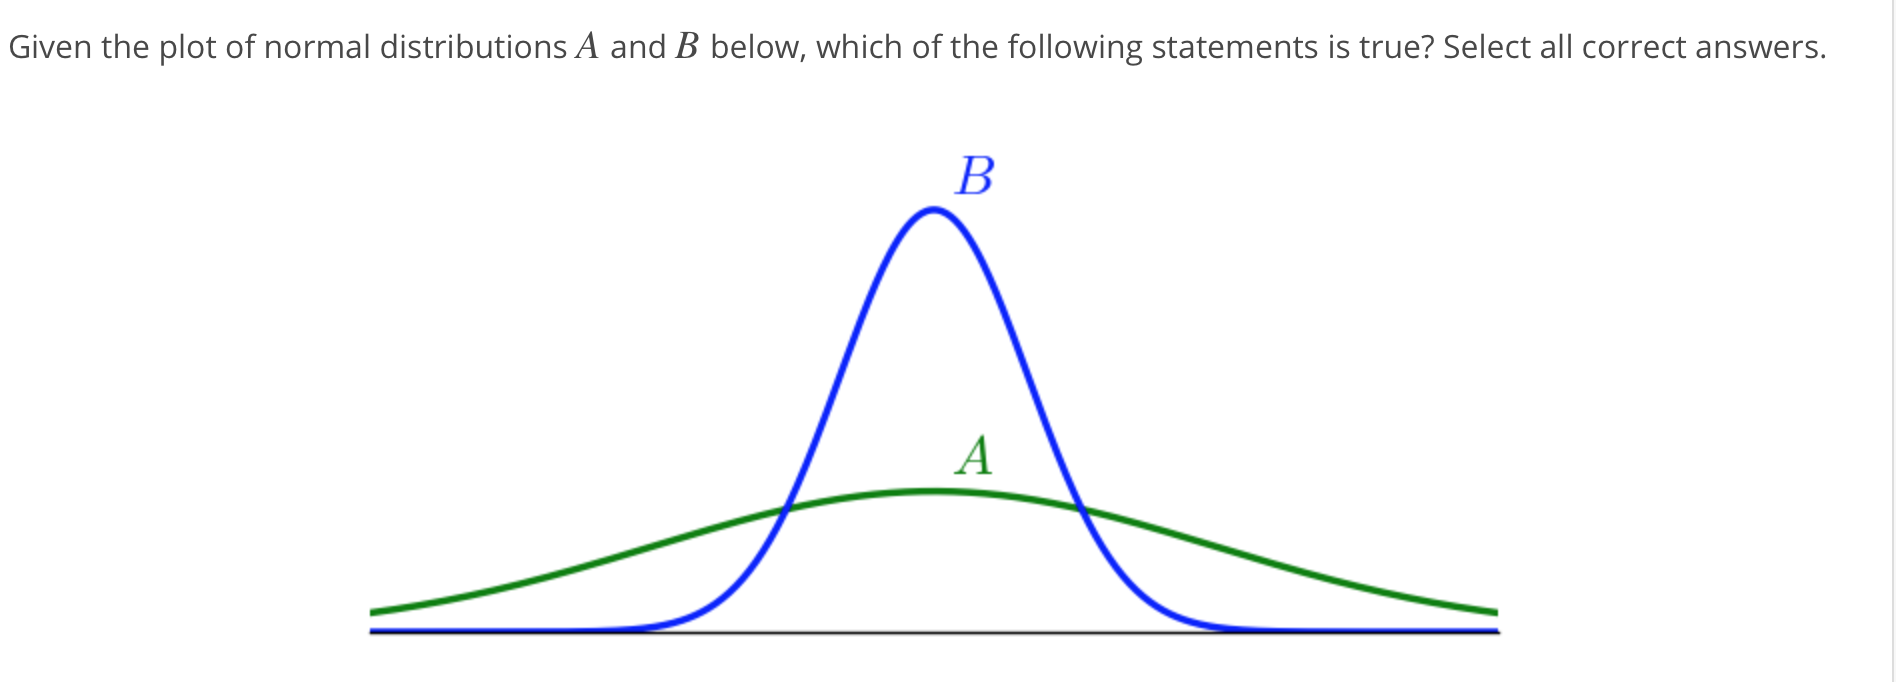 Given the plot of normal distributions A and B below, which of the following statements is true? Select all correct answers